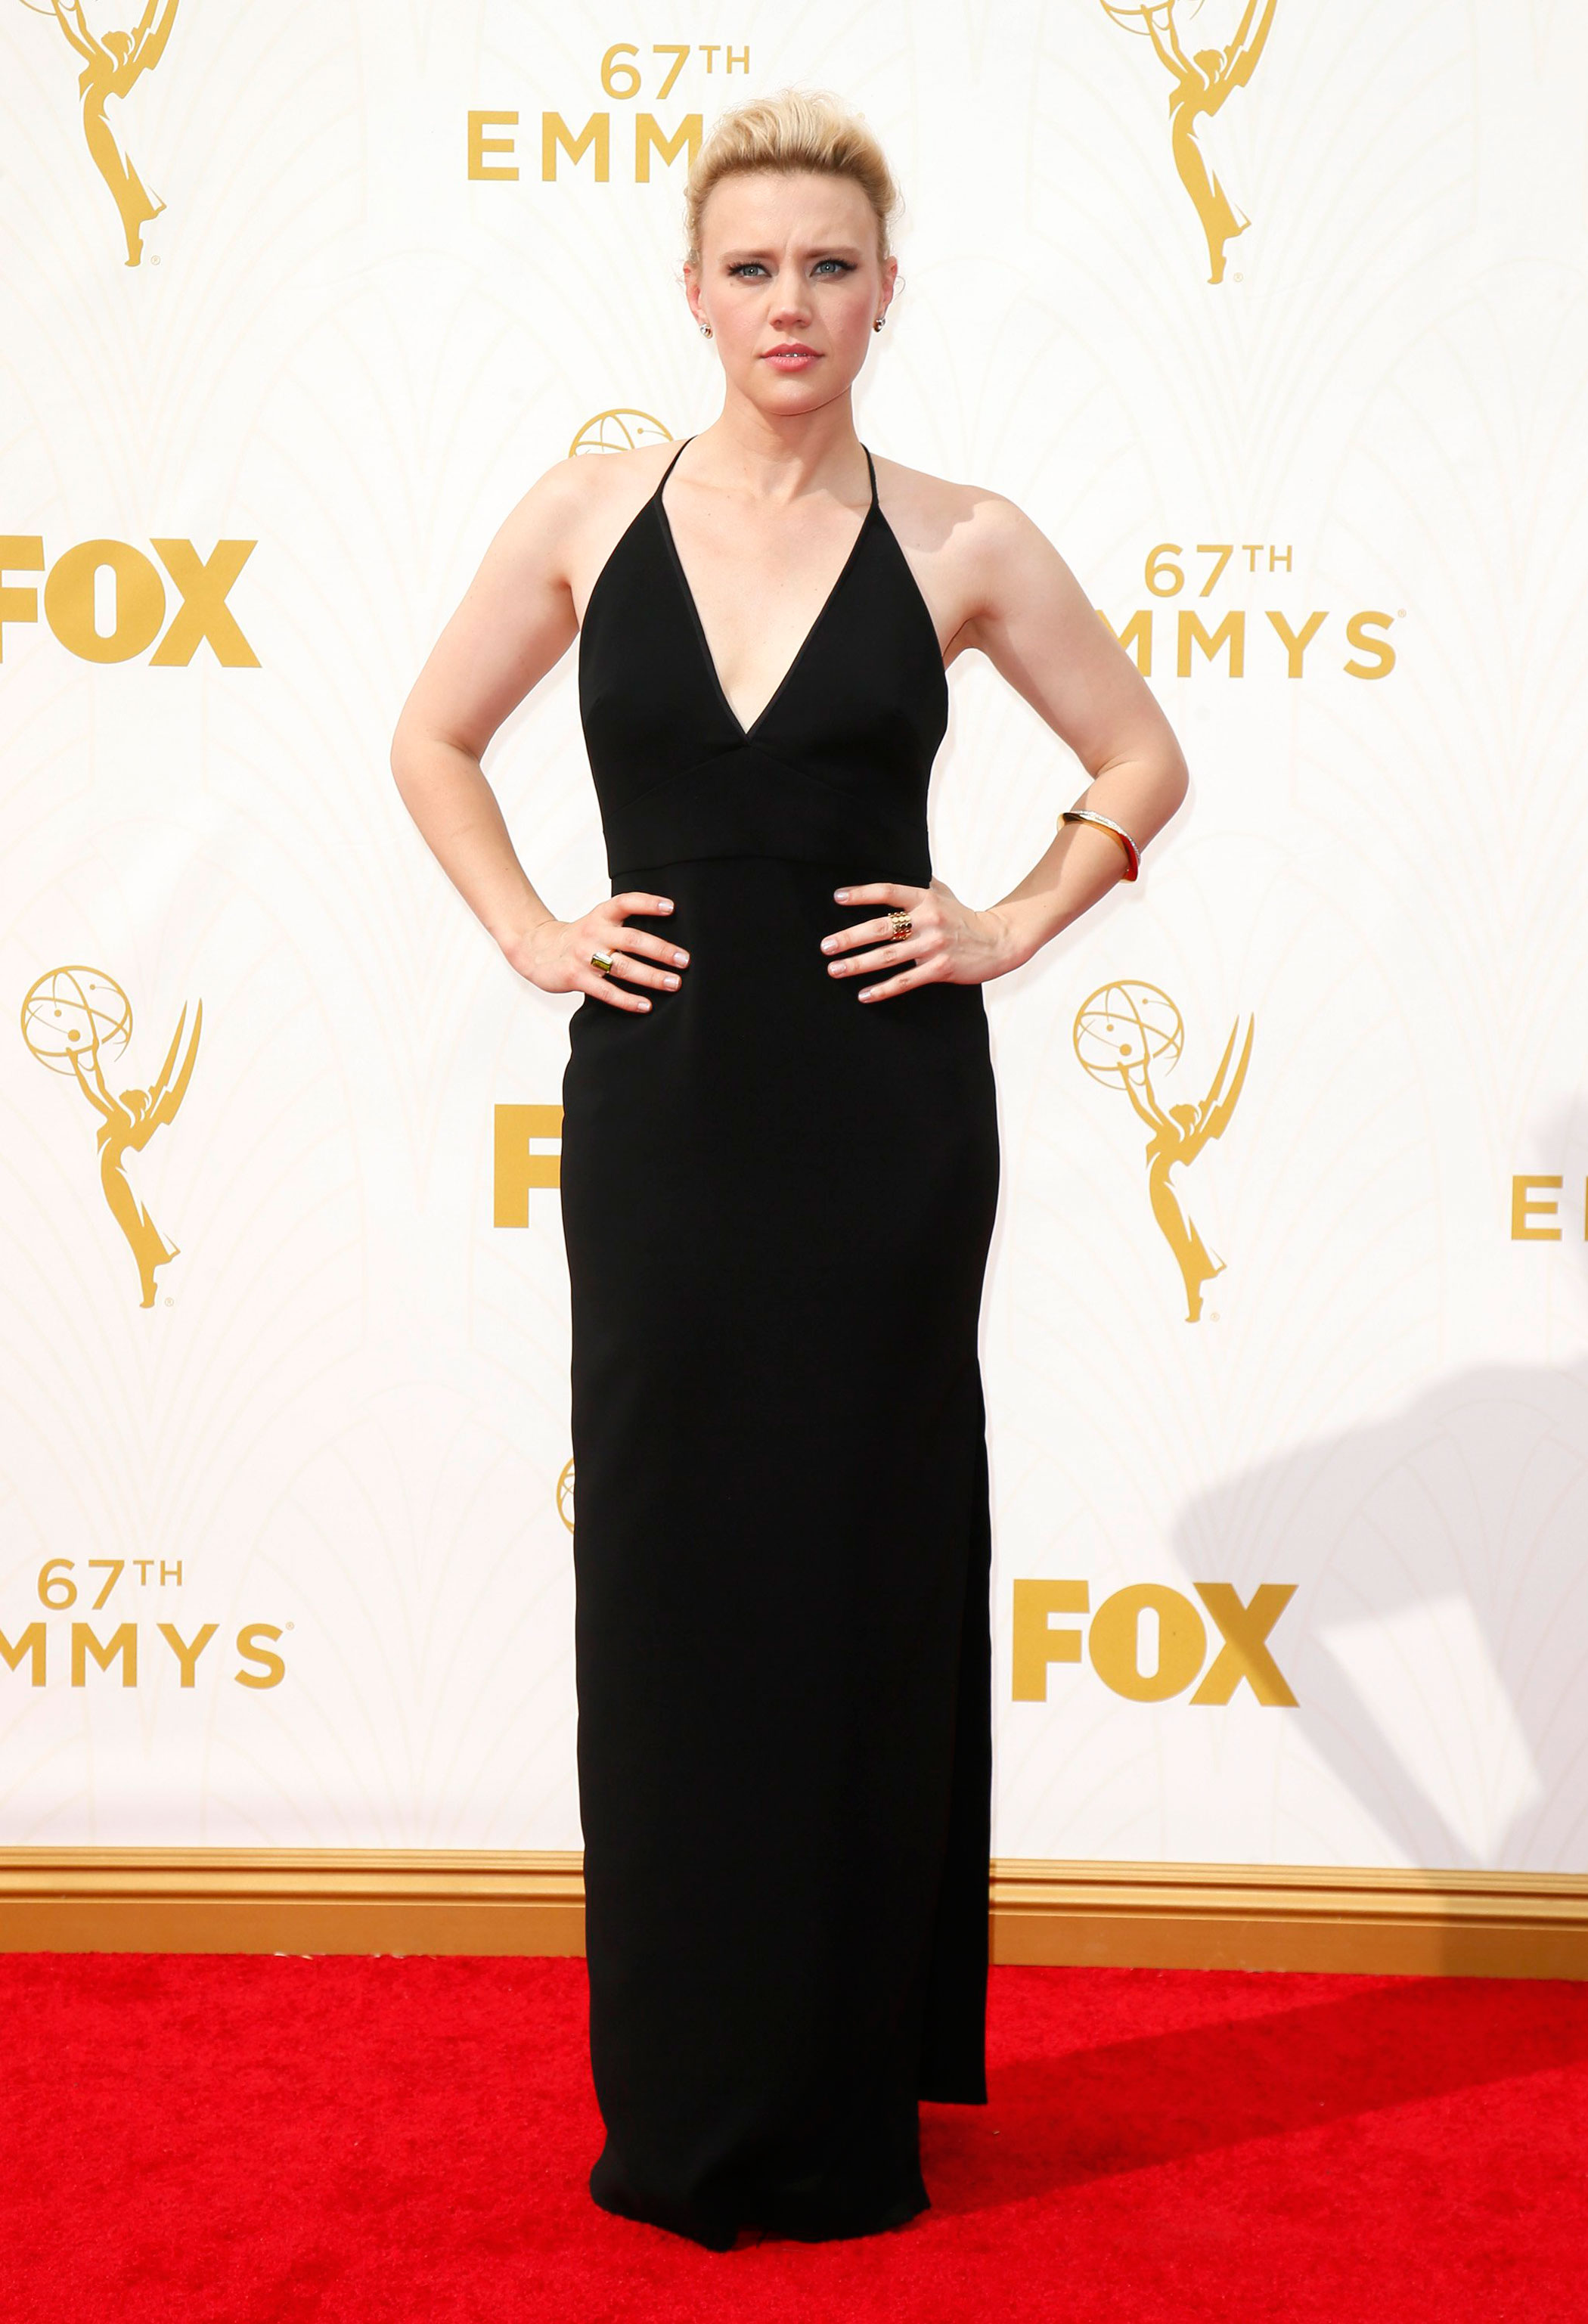 Kate McKinnon at the 67th Emmy Award on Sept. 20, 2015 in Los Angeles.